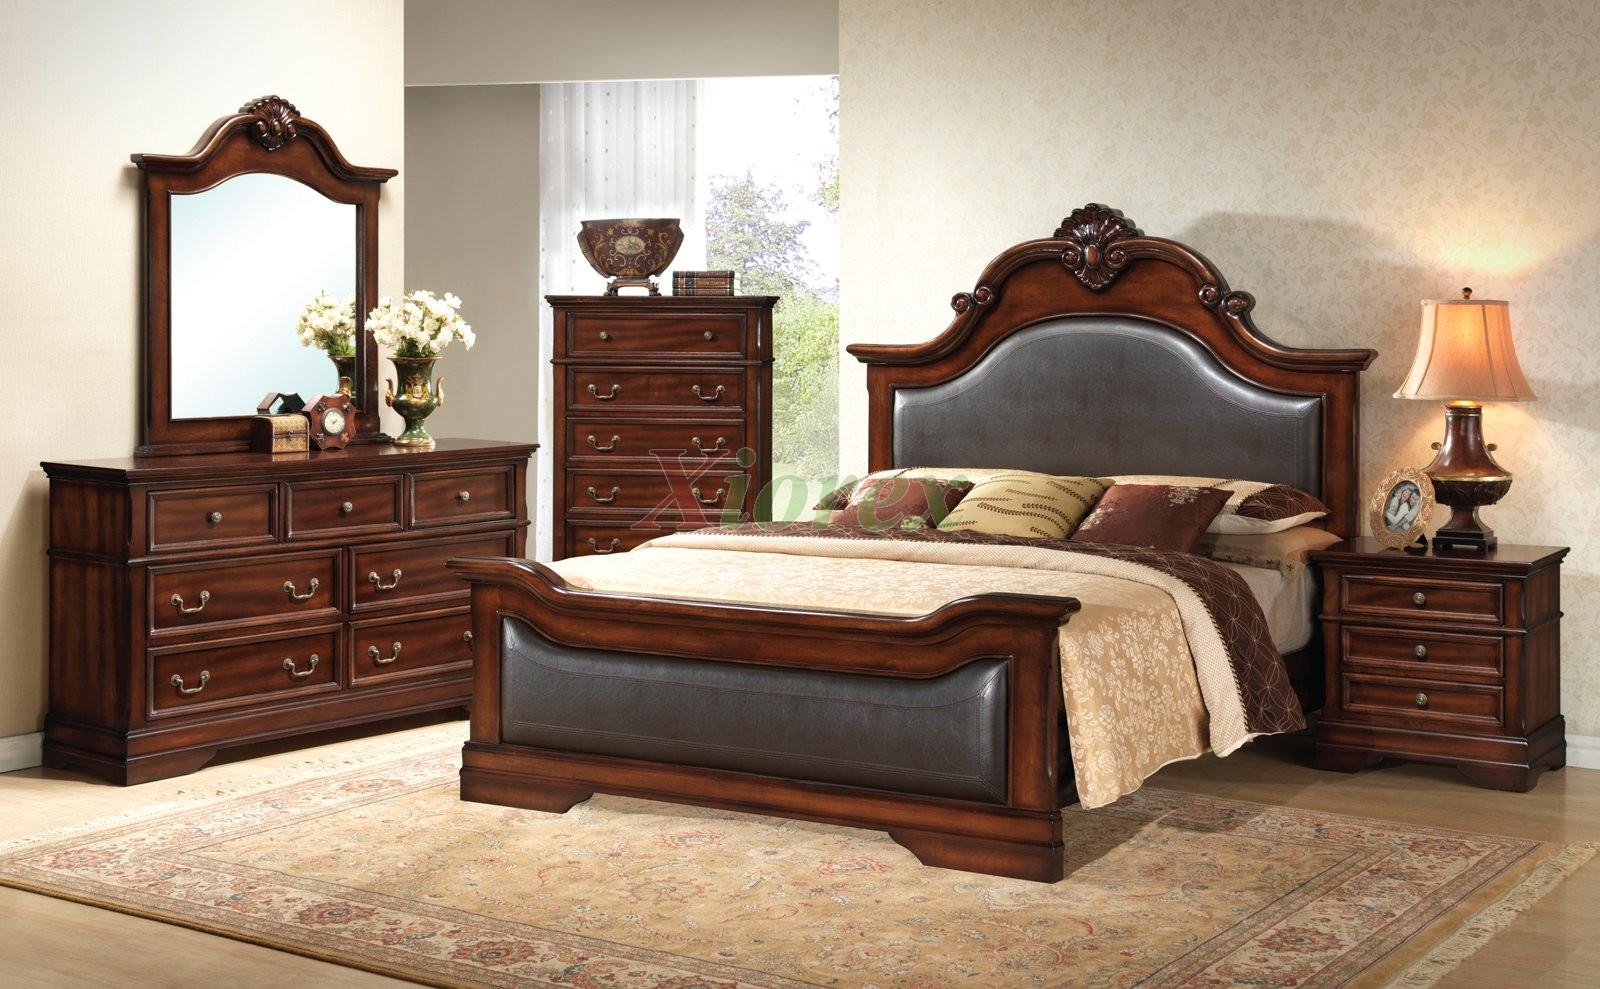 leather bedroom set bedroom furniture set with leather headboard and footboard 12067